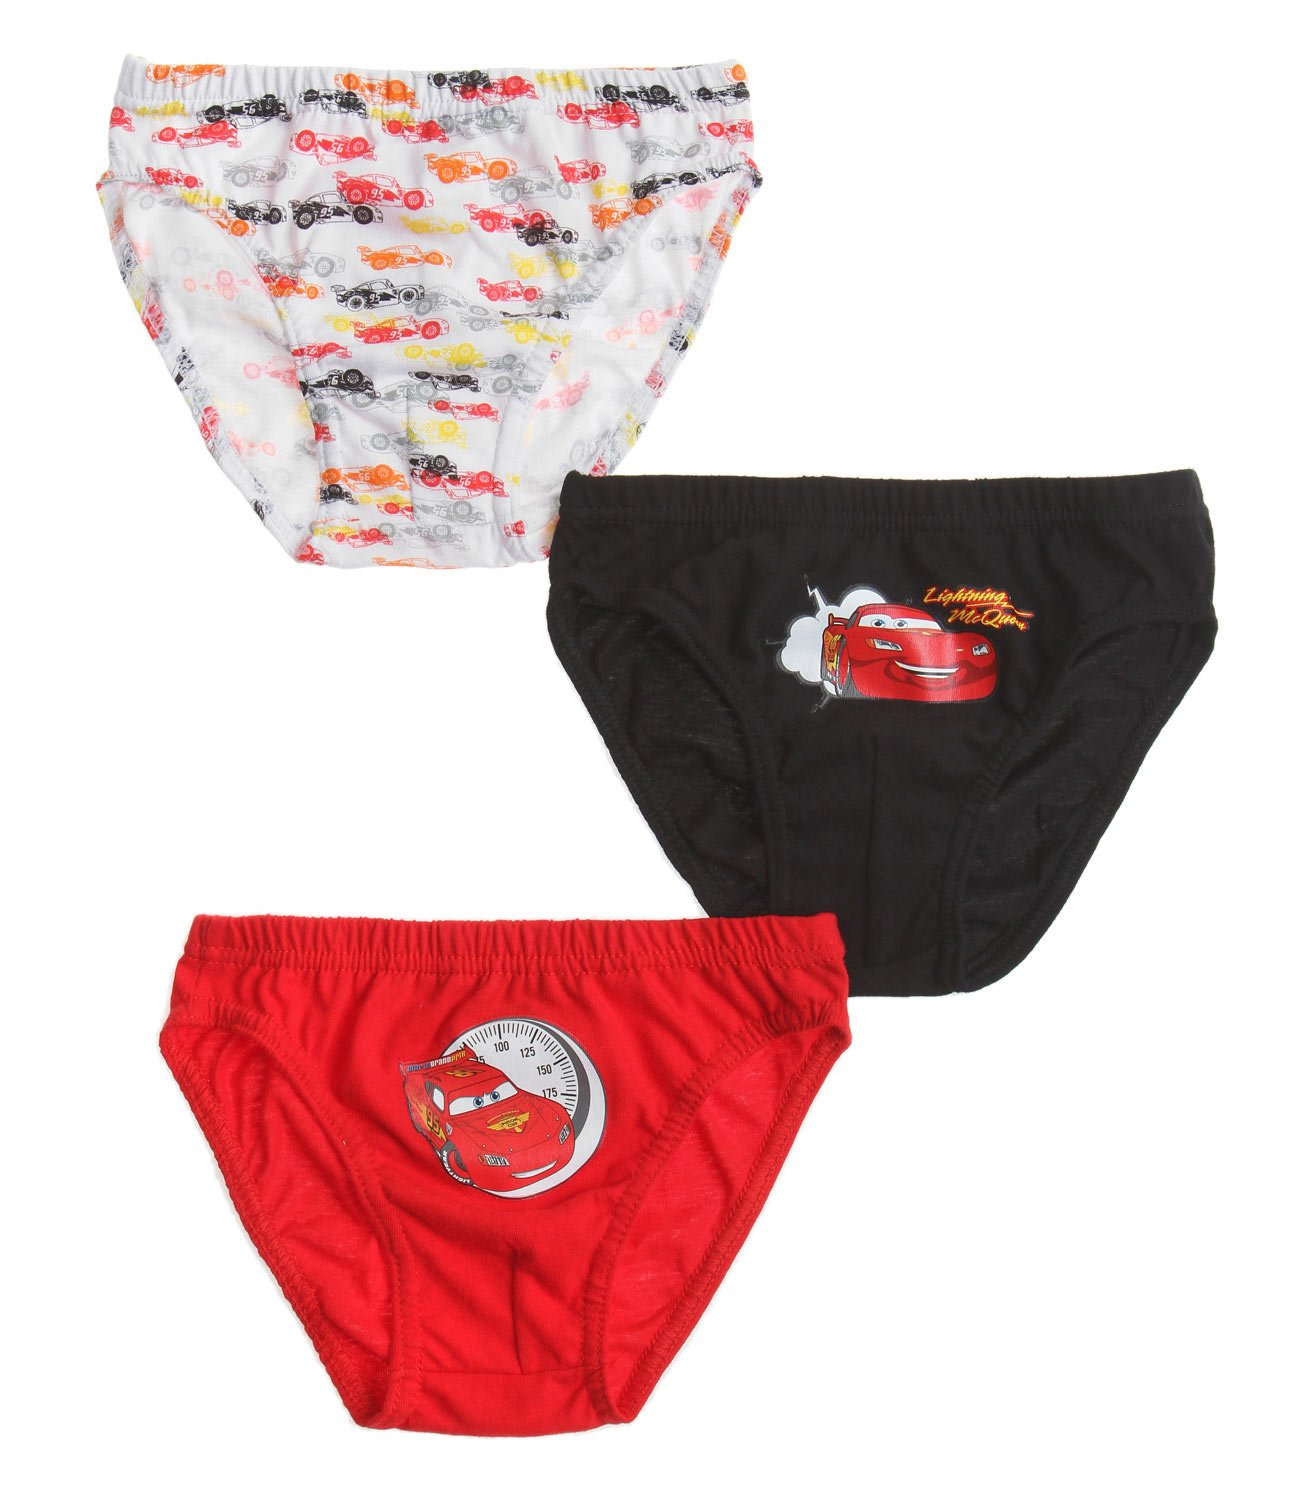 Disney Cars Boys 3 pack brief - red